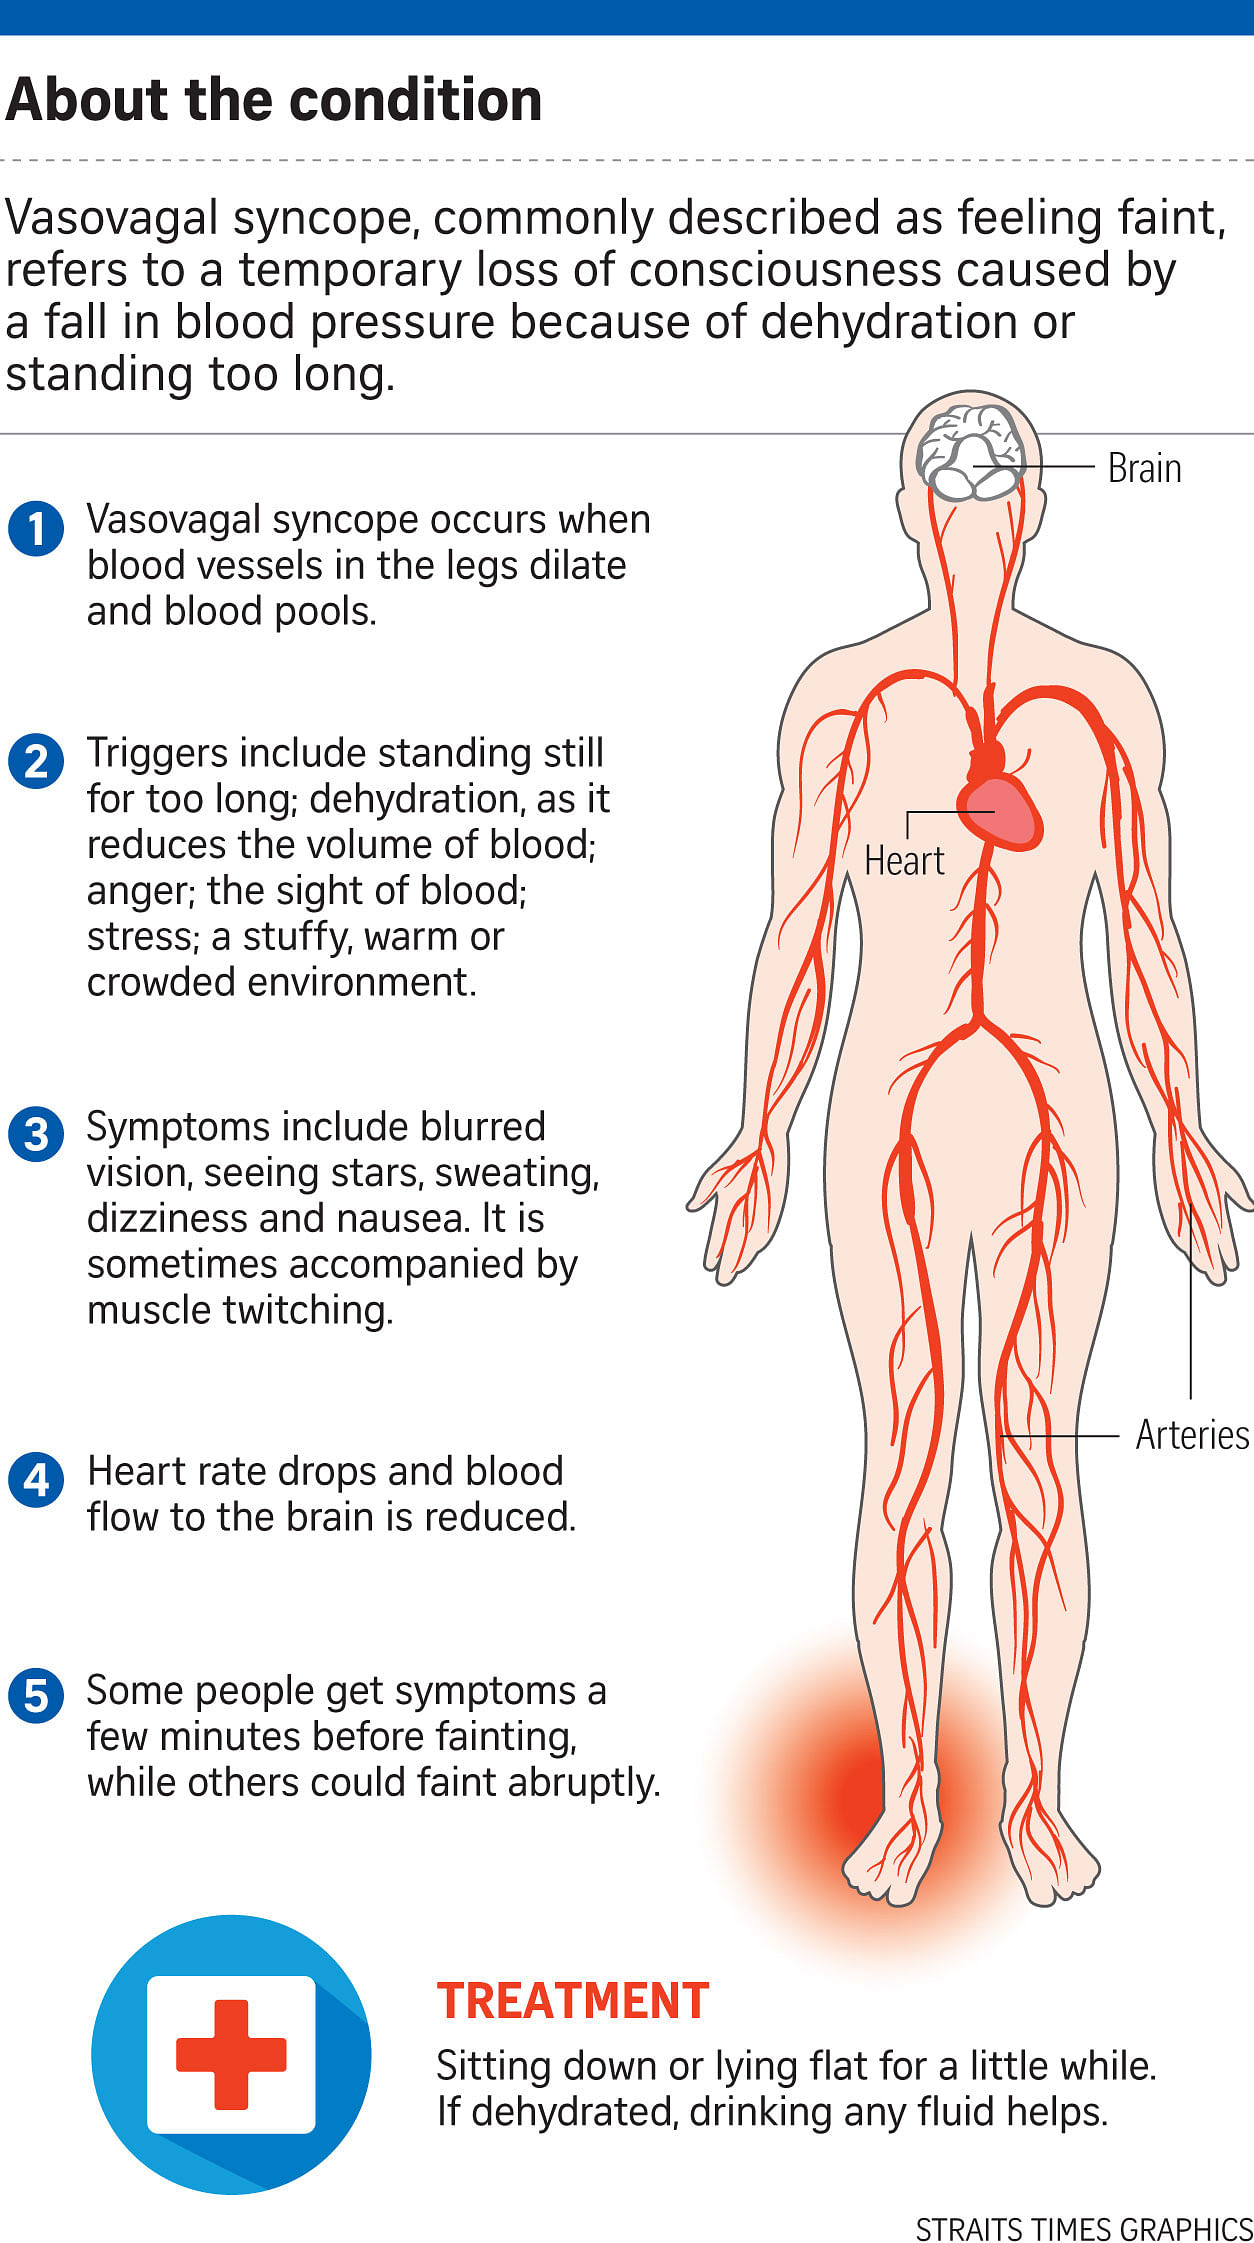 Dangers of dehydration, standing for too long, Health News & Top